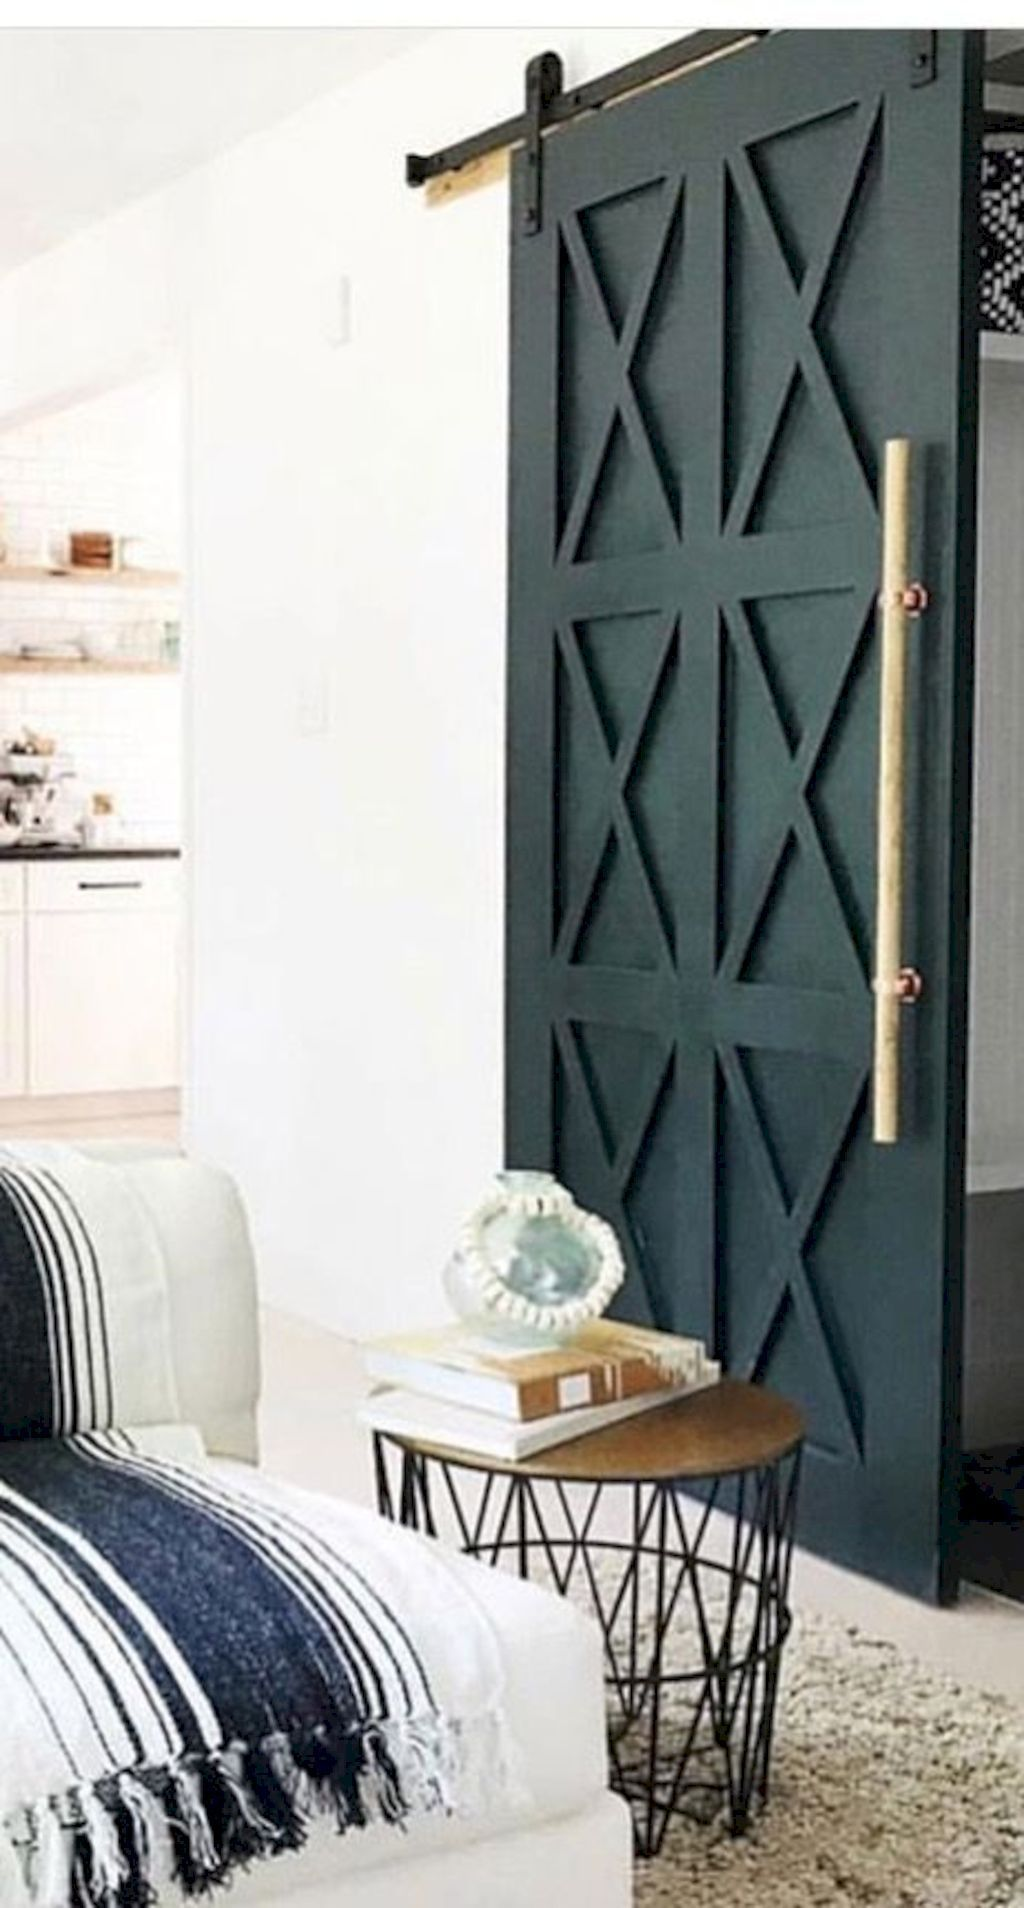 Barn Style Sliding Doors Applied As Bedroom Doors Showing A Rustic Accent In The Modern Country Homes Image 23 Shairoom Com Barn Style Sliding Doors Modern Barn Door Barn Door Designs